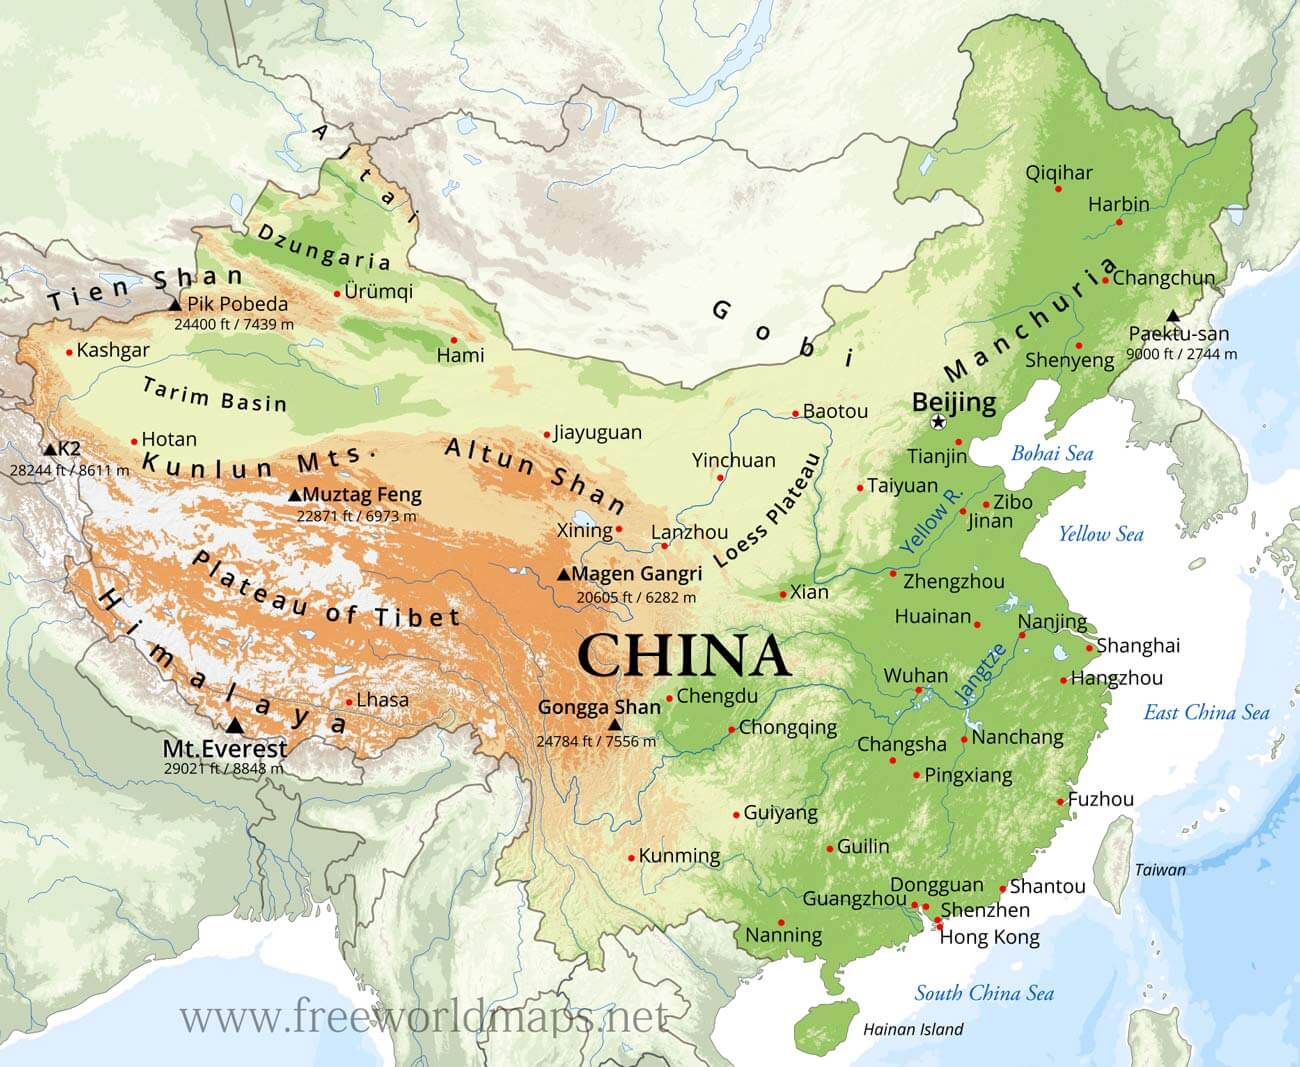 Show Map Of China.China Physical Map